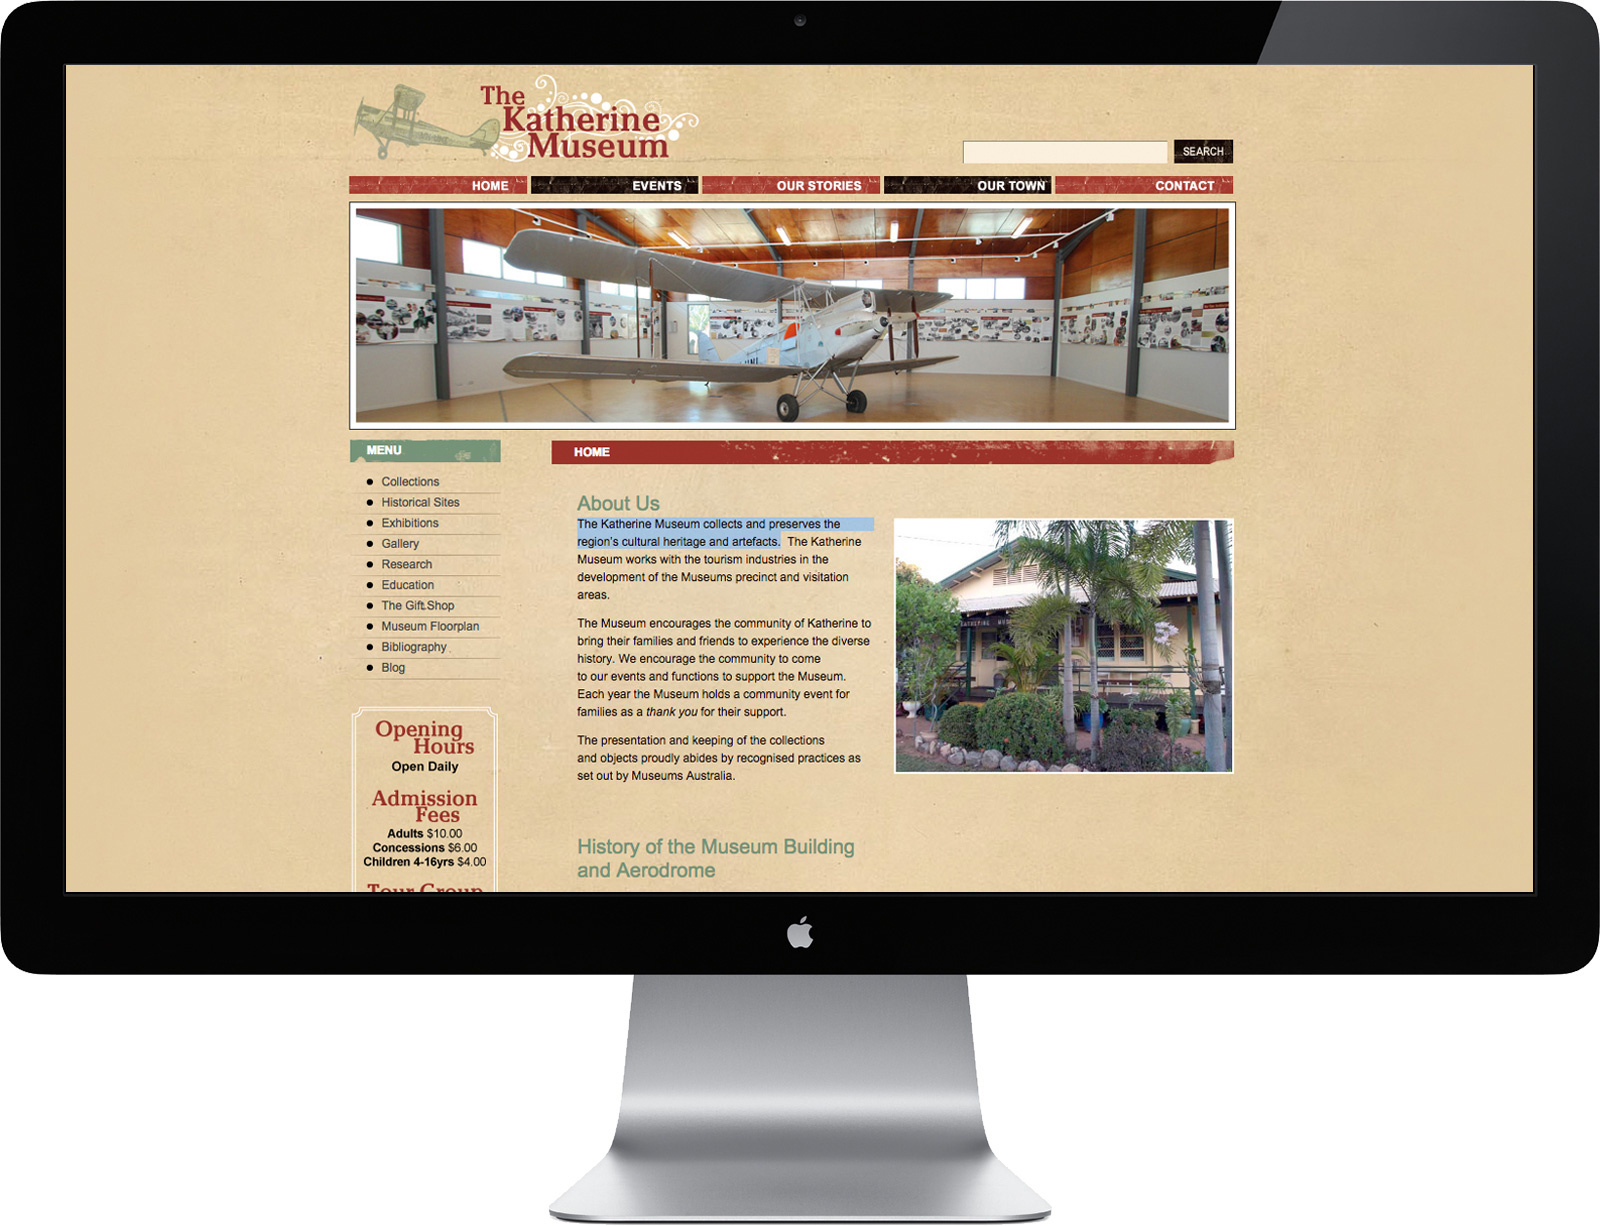 The Katherine Museum Website Design and Development